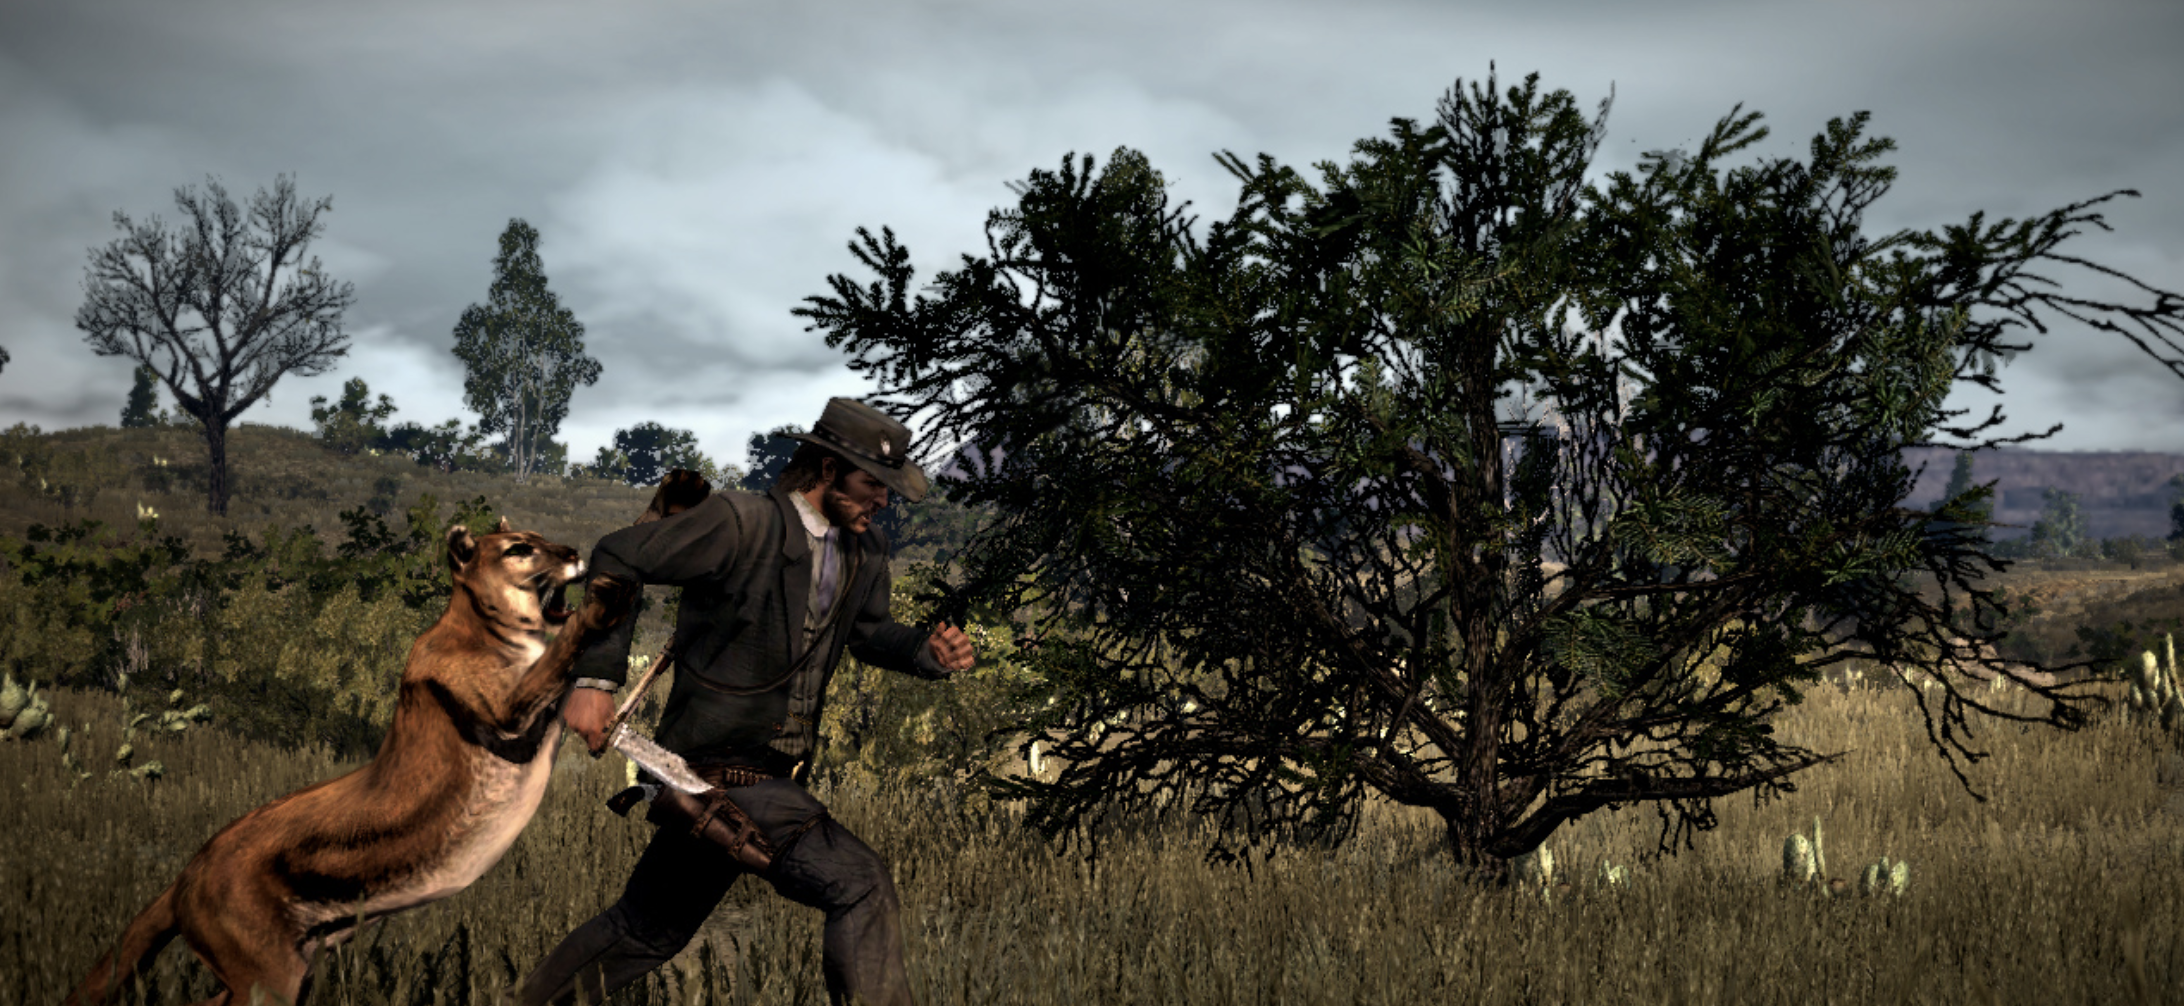 John Marston attacked by leopard. Red Dead Redemption Gameplay screengrab